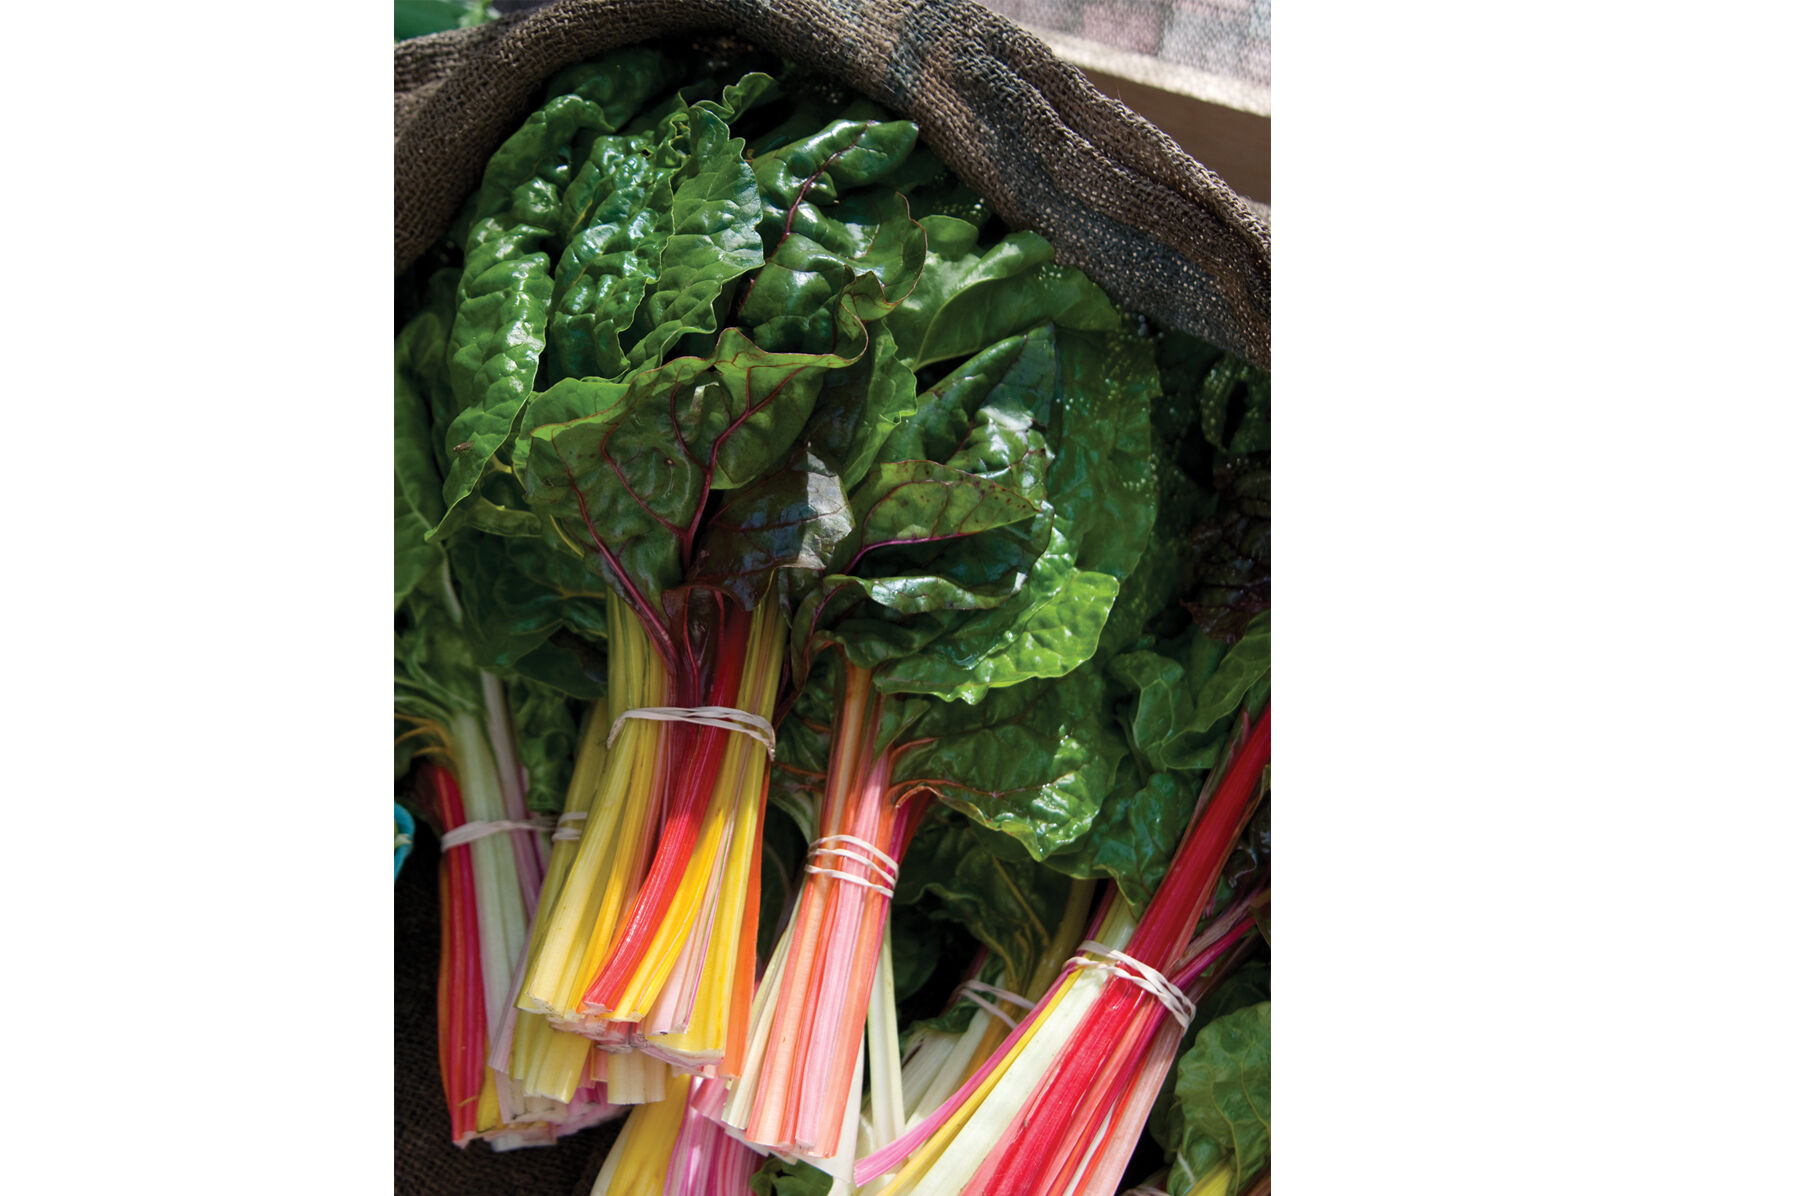 Swiss chard days to maturity